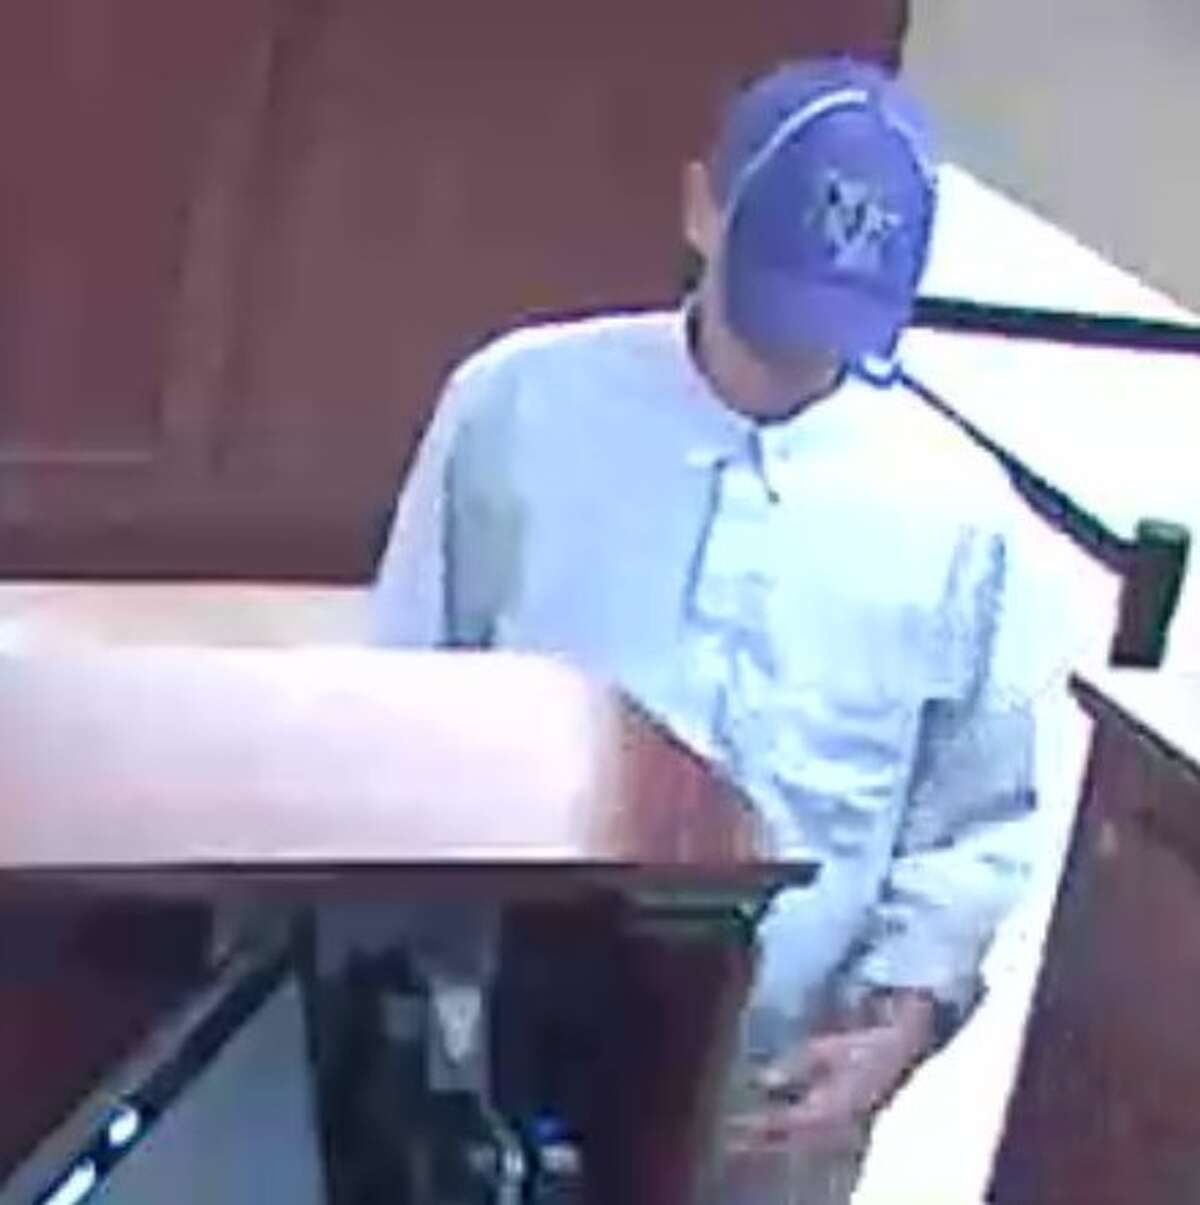 The Federal Bureau of Investigation is looking for this man who is suspected of robbing the Shell Federal Credit Union at 4787 Wilson Road in Humble on Wednesday, June 15, 2016.